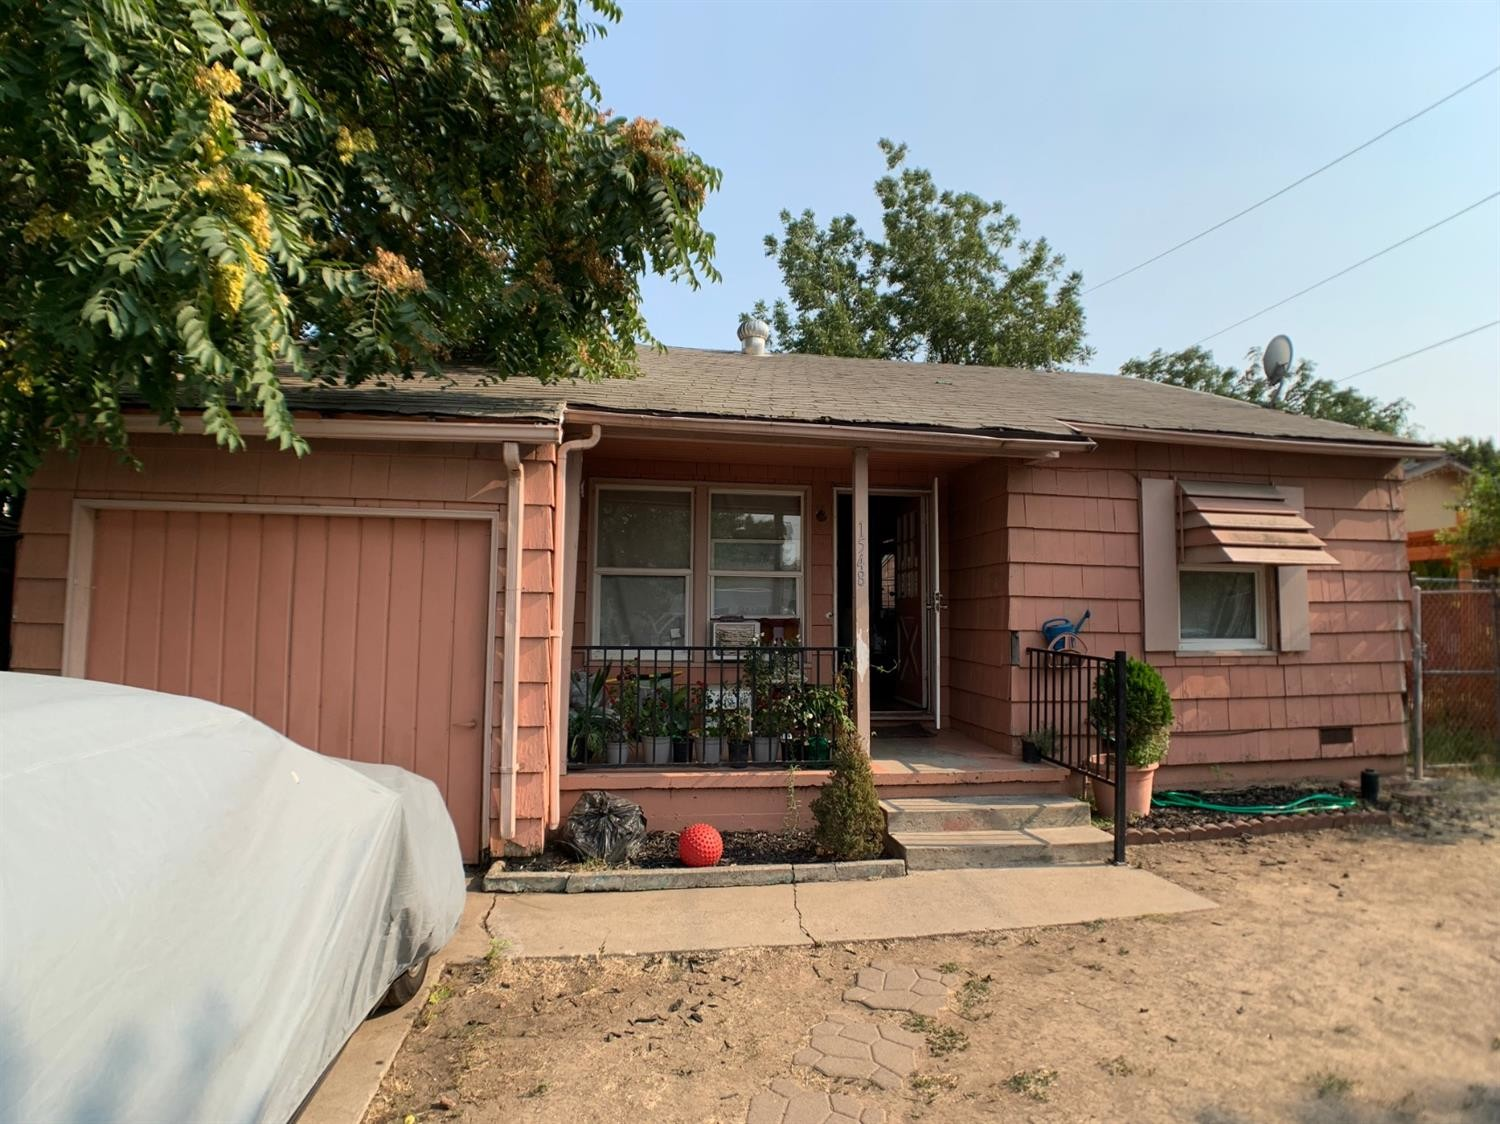 2-Bedroom House In South Stockton